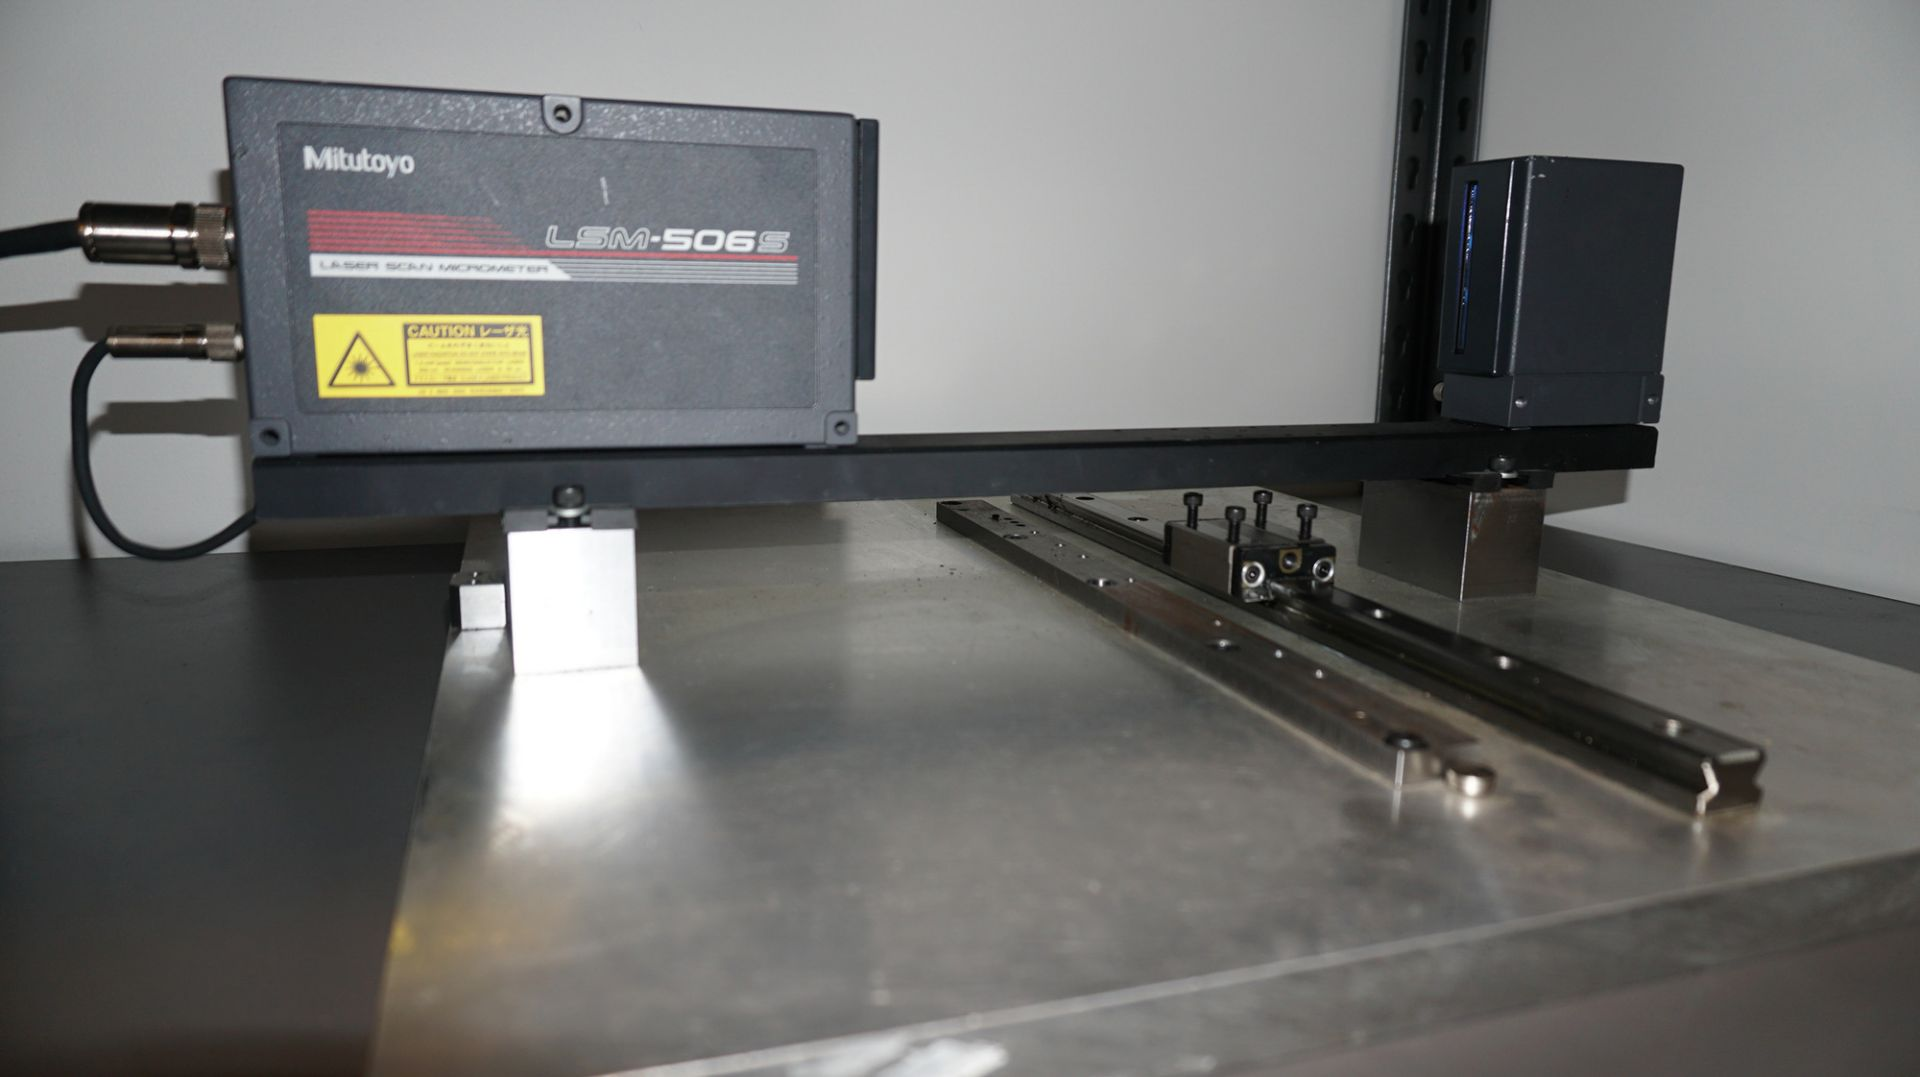 Lot 13 - MITUTOYO (2016) LSM-6200 & LSM-506S LASER SCAN MICROMETER SYSTEM WITH 1 - 60MM MEASUREMENT (NEVER